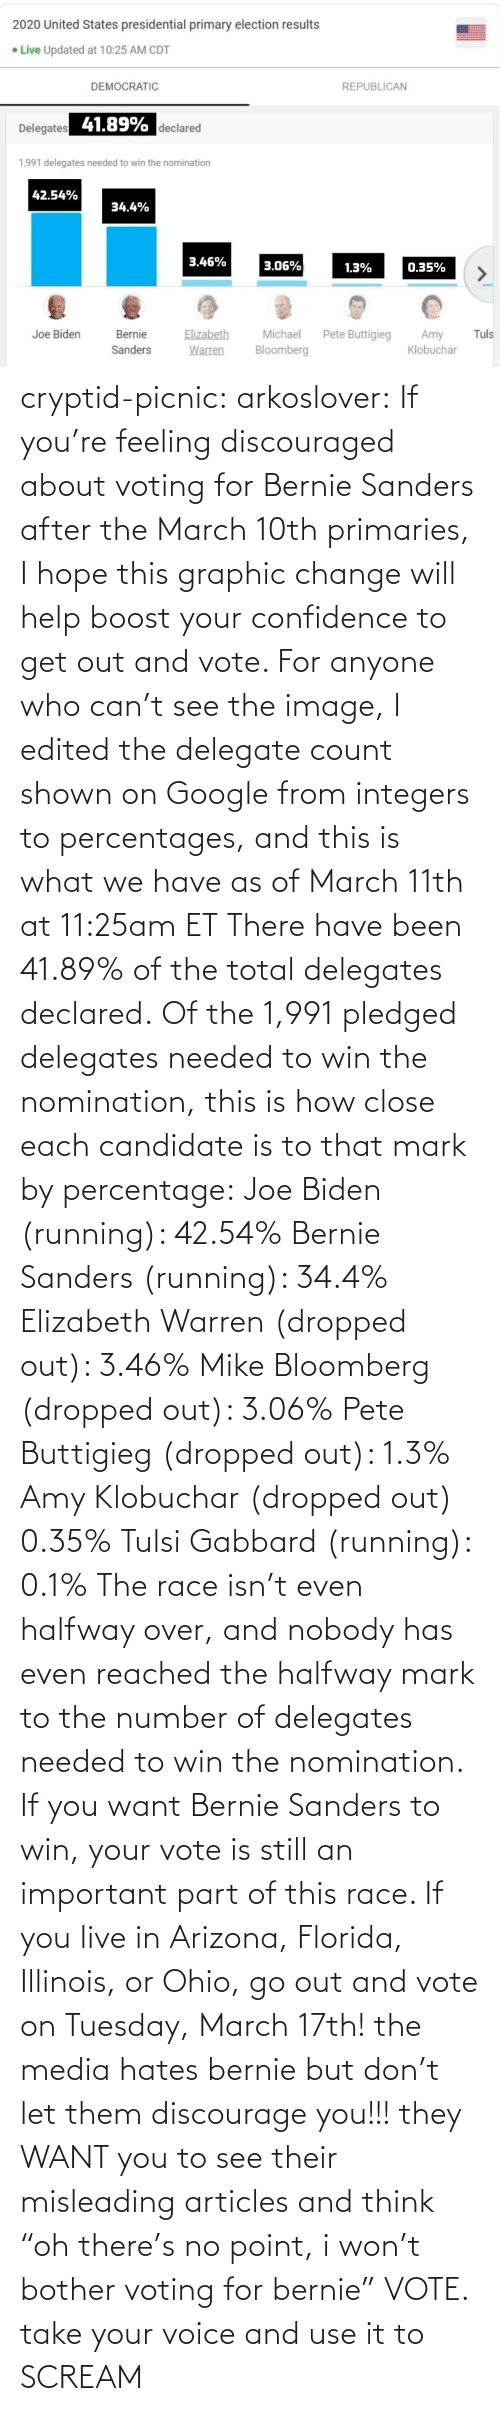 "Bernie Sanders: cryptid-picnic: arkoslover:   If you're feeling discouraged about voting for Bernie Sanders after the March 10th primaries, I hope this graphic change will help boost your confidence to get out and vote. For anyone who can't see the image, I edited the delegate count shown on Google from integers to percentages, and this is what we have as of March 11th at 11:25am ET There have been 41.89% of the total delegates declared. Of the 1,991 pledged delegates needed to win the nomination, this is how close each candidate is to that mark by percentage: Joe Biden (running): 42.54% Bernie Sanders (running): 34.4% Elizabeth Warren (dropped out): 3.46% Mike Bloomberg (dropped out): 3.06% Pete Buttigieg (dropped out): 1.3% Amy Klobuchar (dropped out) 0.35% Tulsi Gabbard (running): 0.1% The race isn't even halfway over, and nobody has even reached the halfway mark to the number of delegates needed to win the nomination. If you want Bernie Sanders to win, your vote is still an important part of this race. If you live in Arizona, Florida, Illinois, or Ohio, go out and vote on Tuesday, March 17th!    the media hates bernie but don't let them discourage you!!! they WANT you to see their misleading articles and think ""oh there's no point, i won't bother voting for bernie"" VOTE. take your voice and use it to SCREAM"